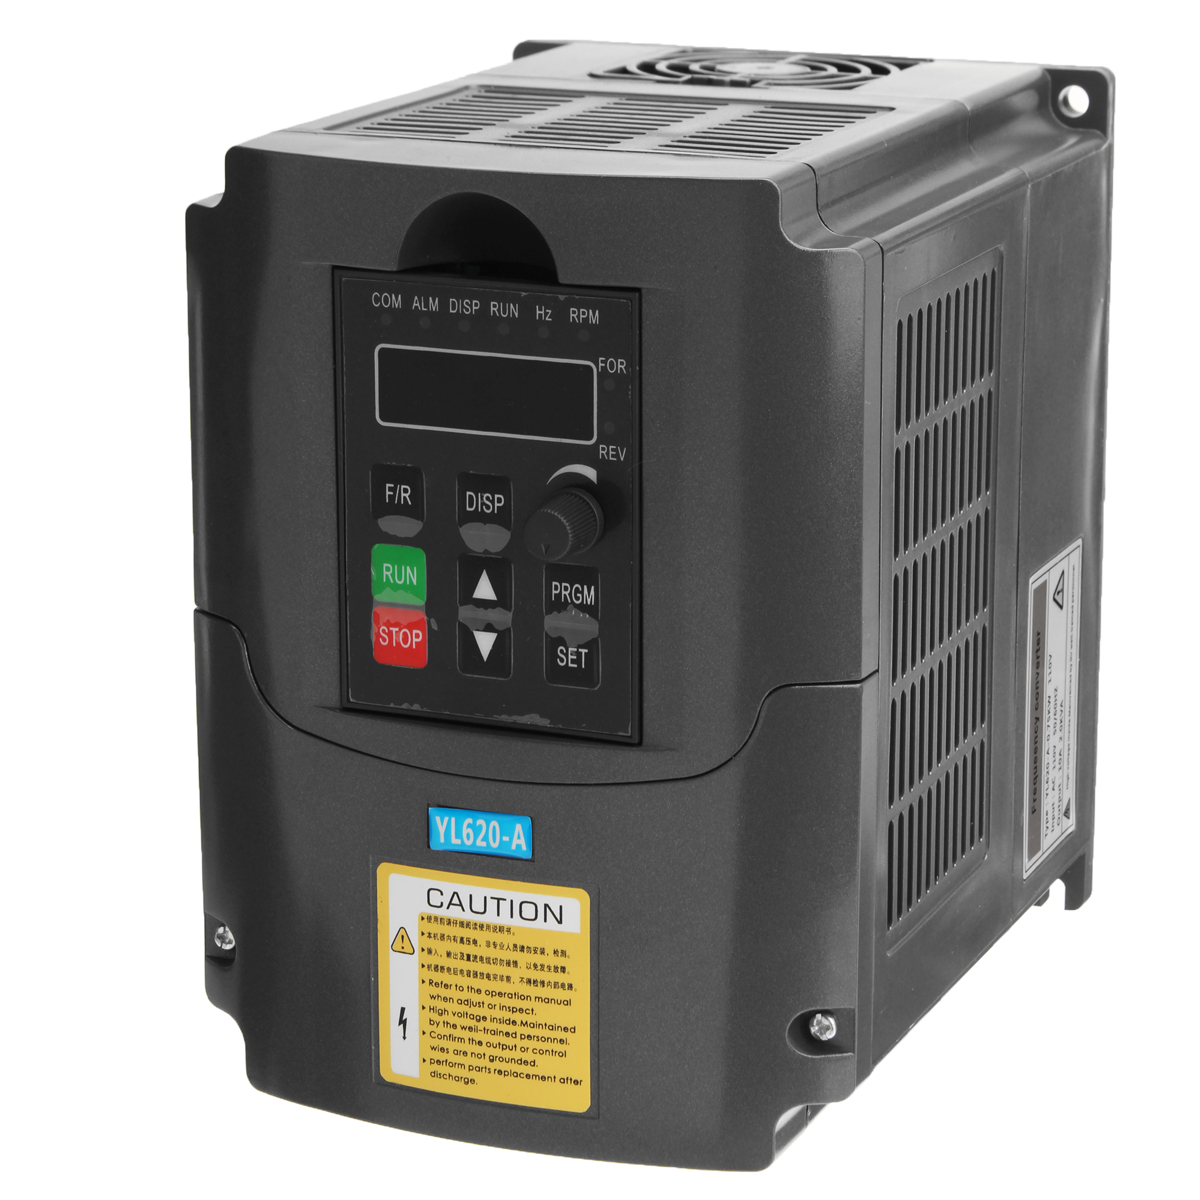 AC Variable Frequency Inverter Converter 0.75KW 110V 3 Phase Output Built-in PLC Single Phase Space Voltage Vector Modulation 110v 2 2kw ac variable frequency inverter converter 3 phase output single phase input space voltage vector modulation